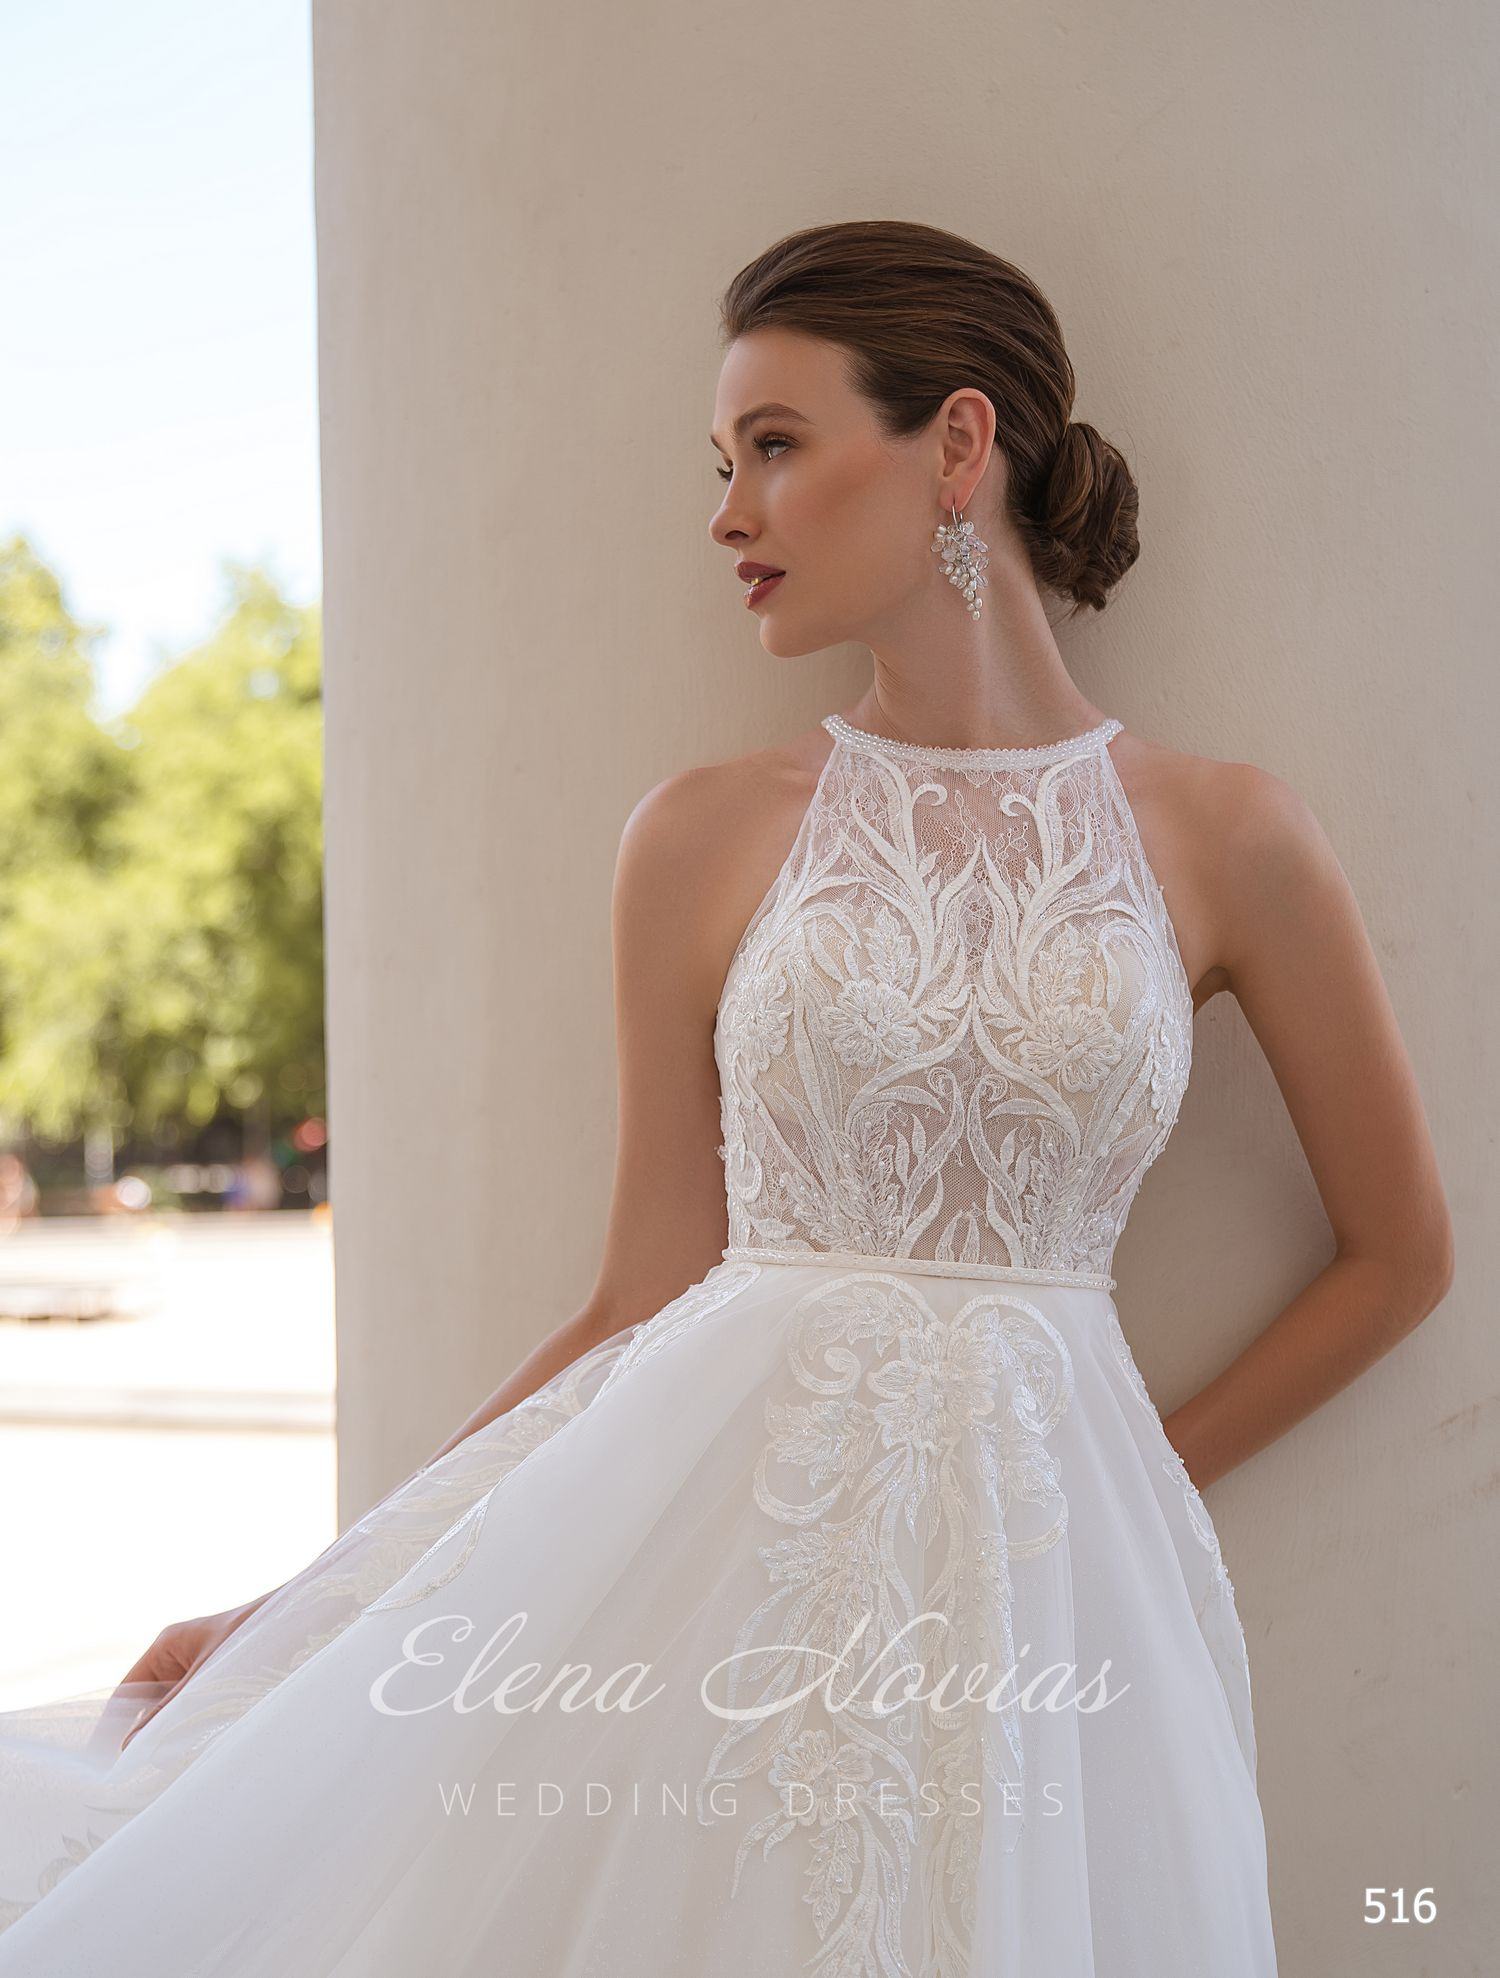 Wedding dresses 516